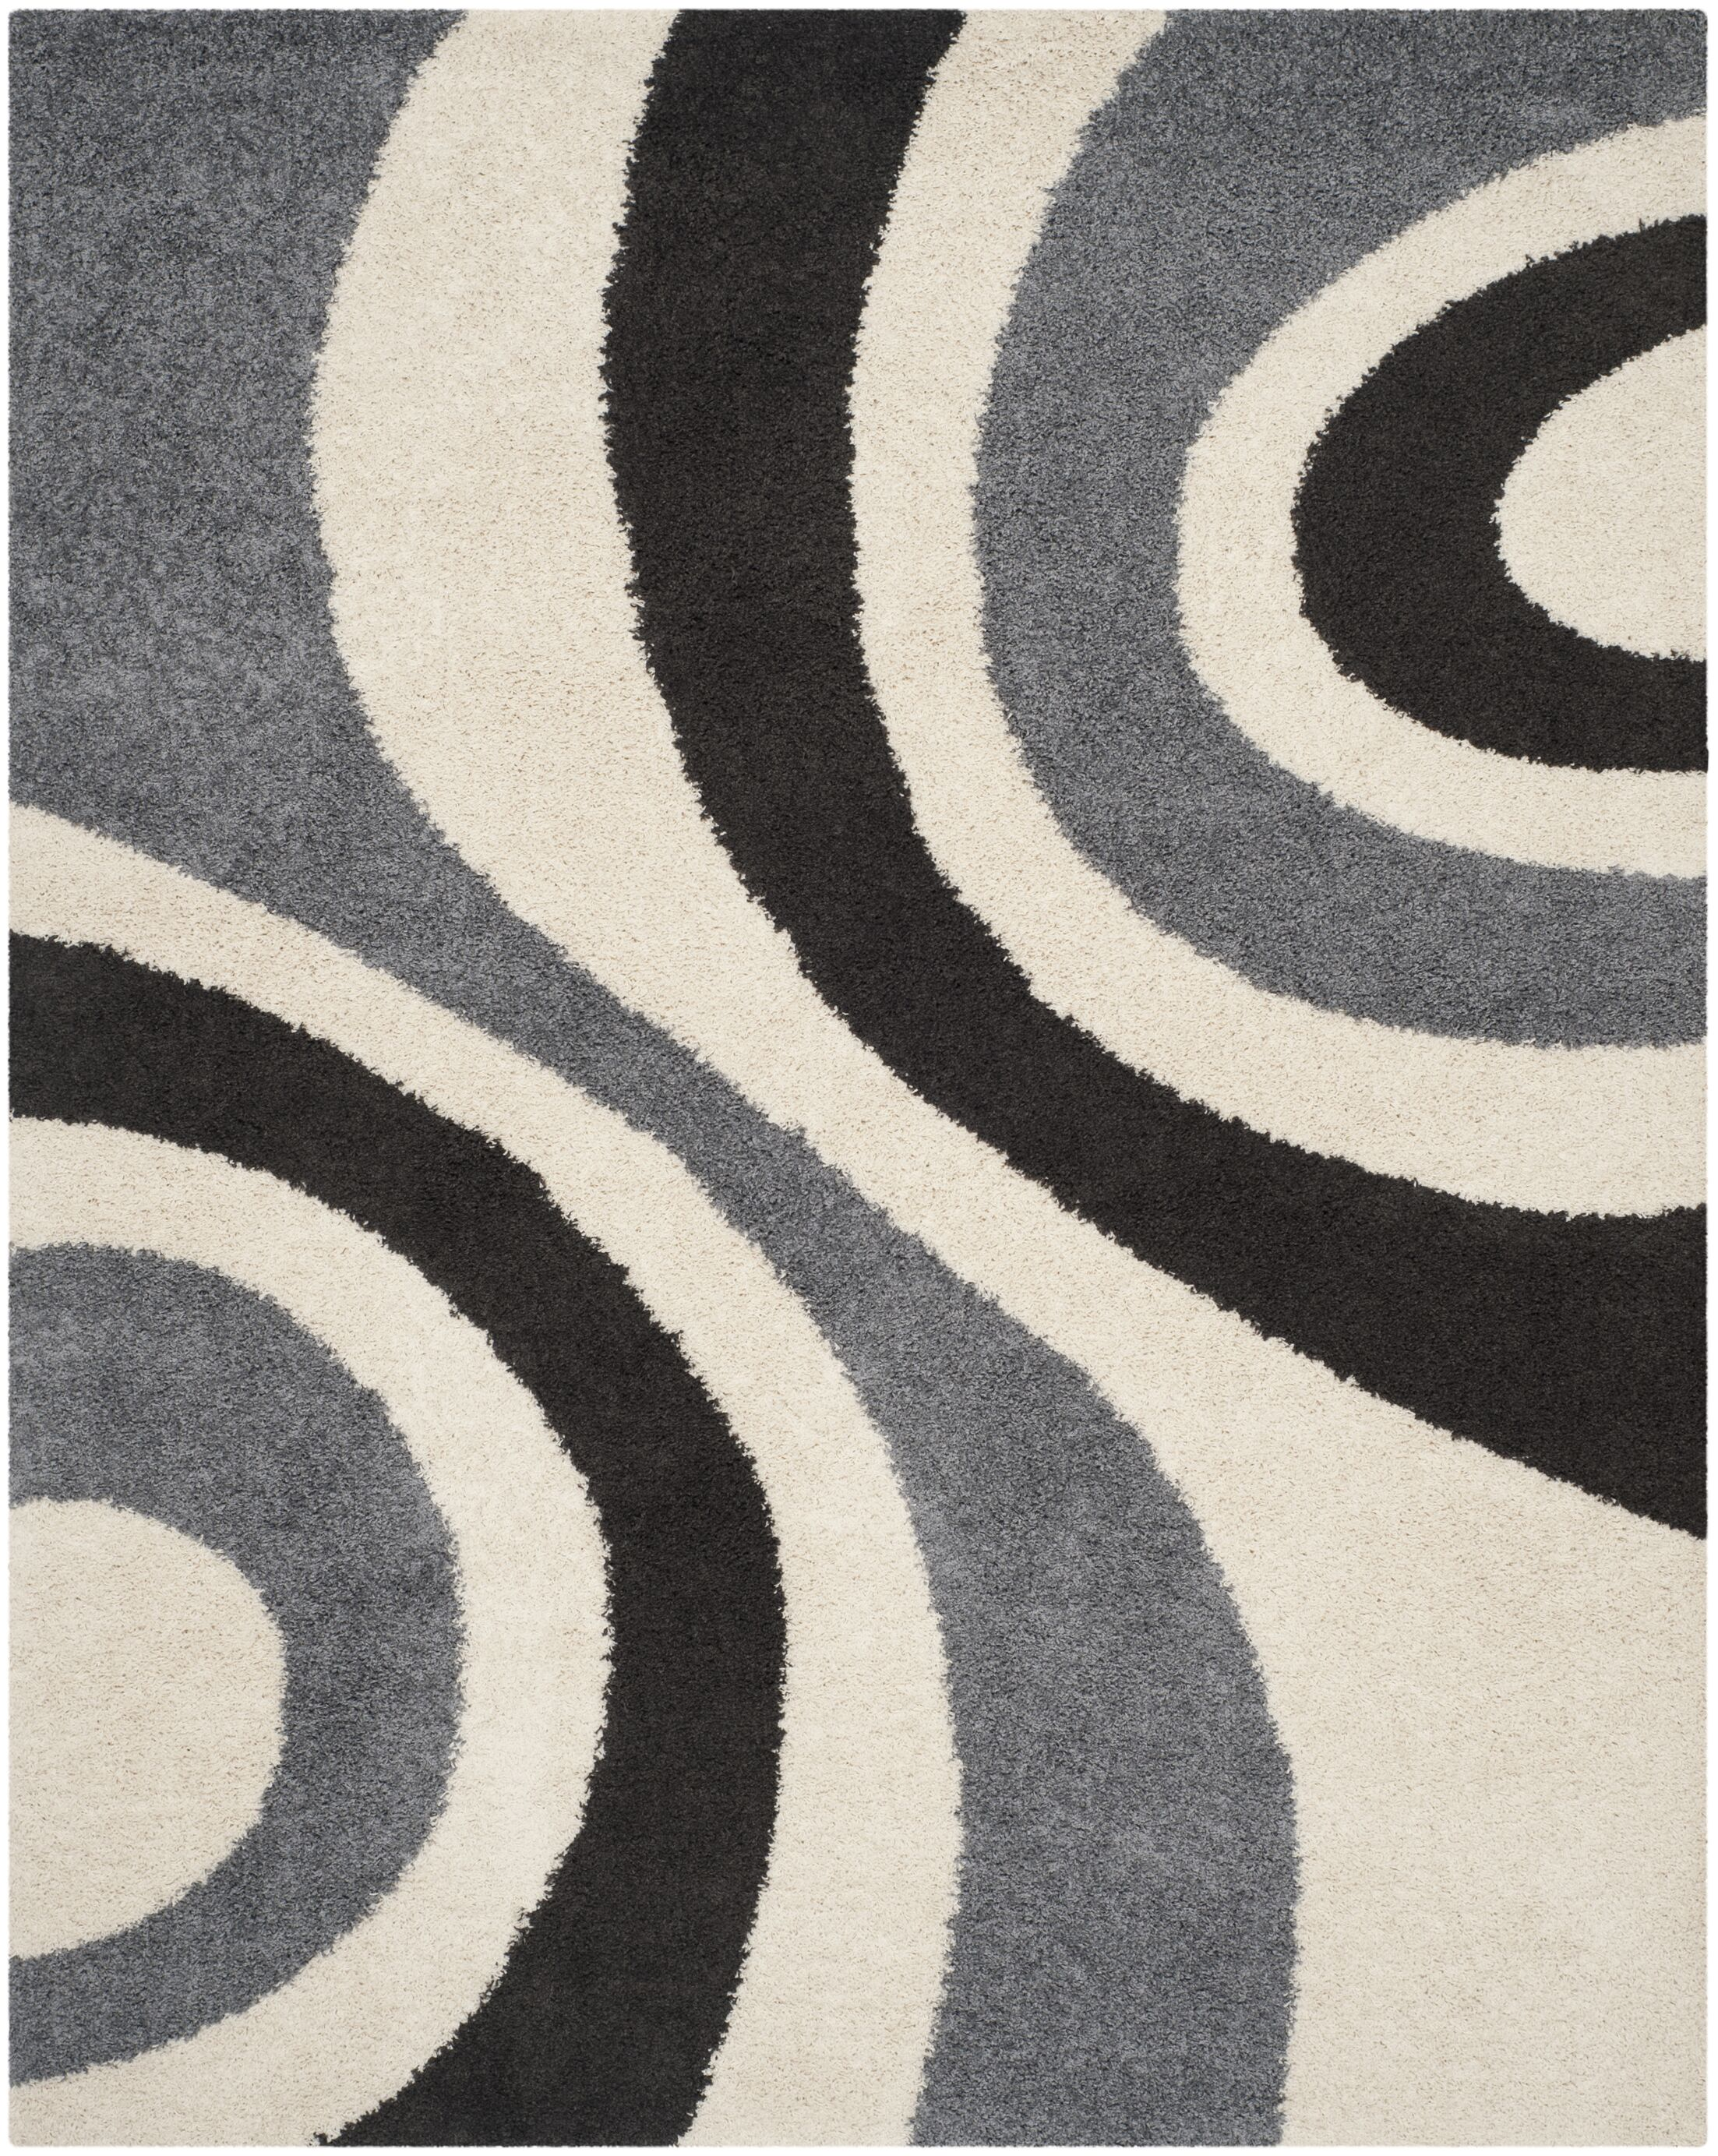 Swanson Ivory & Grey Contemporary Area Rug Rug Size: Rectangle 8' x 10'